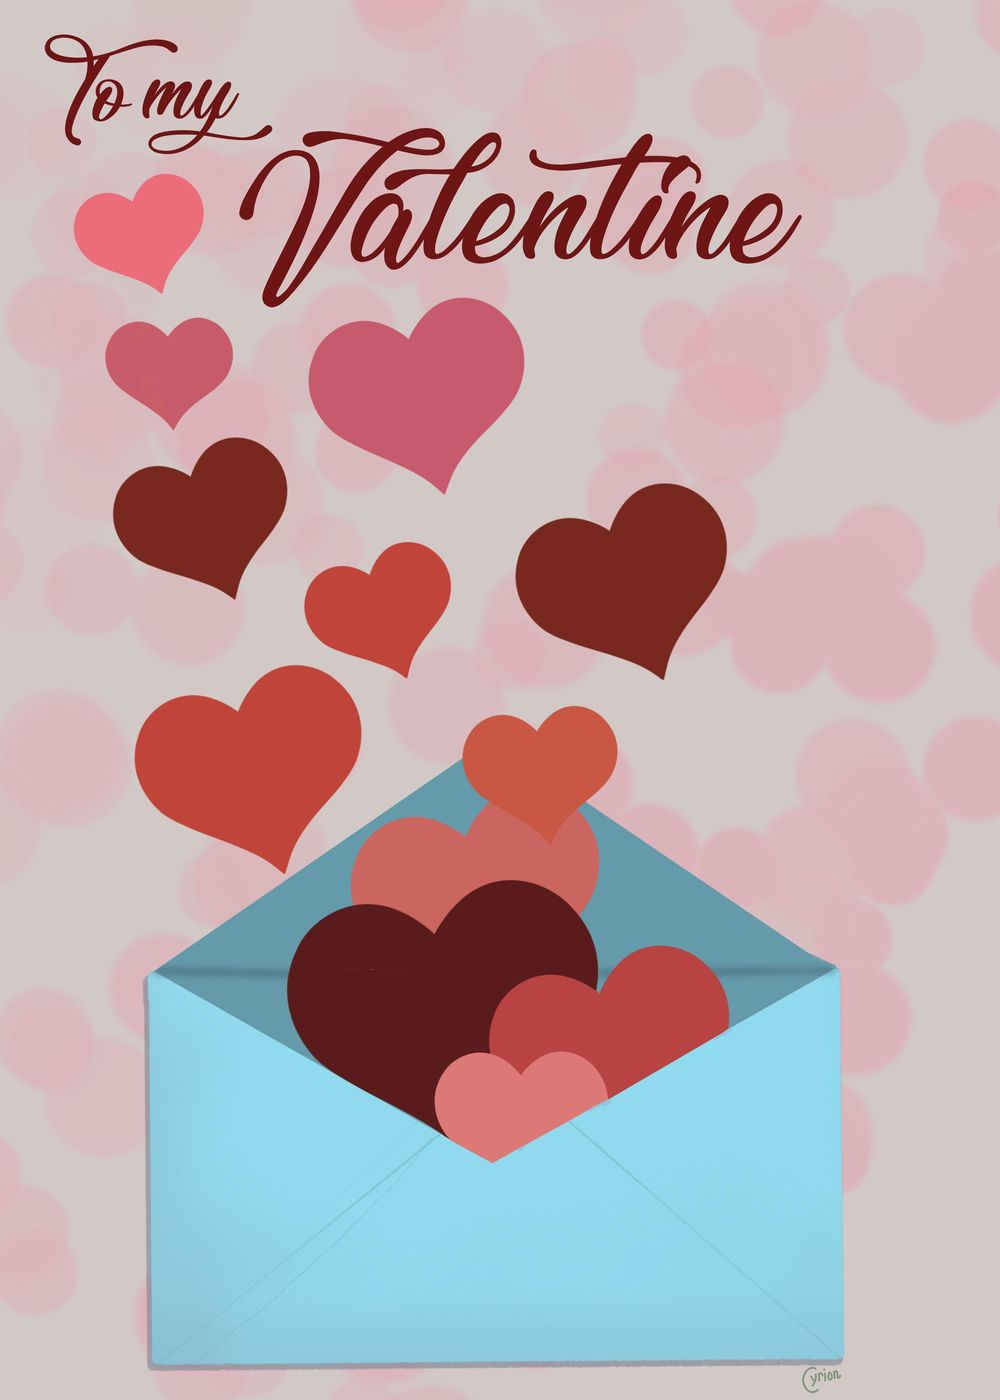 Valentine Cards - image 5 - student project